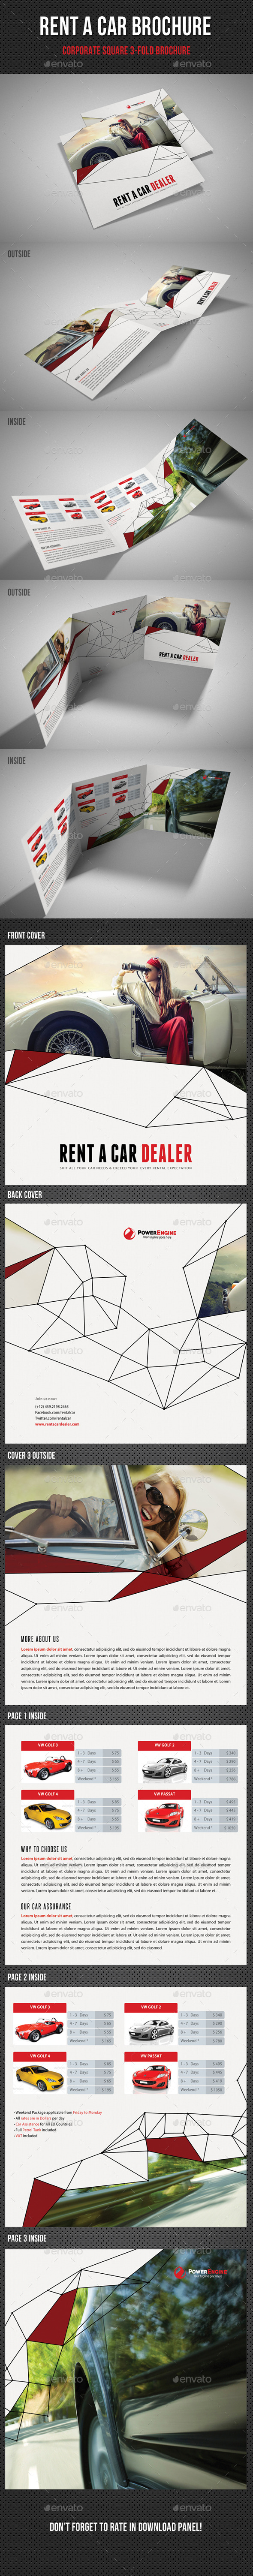 GraphicRiver Rent A Car Square 3-Fold Brochure 01 11409999